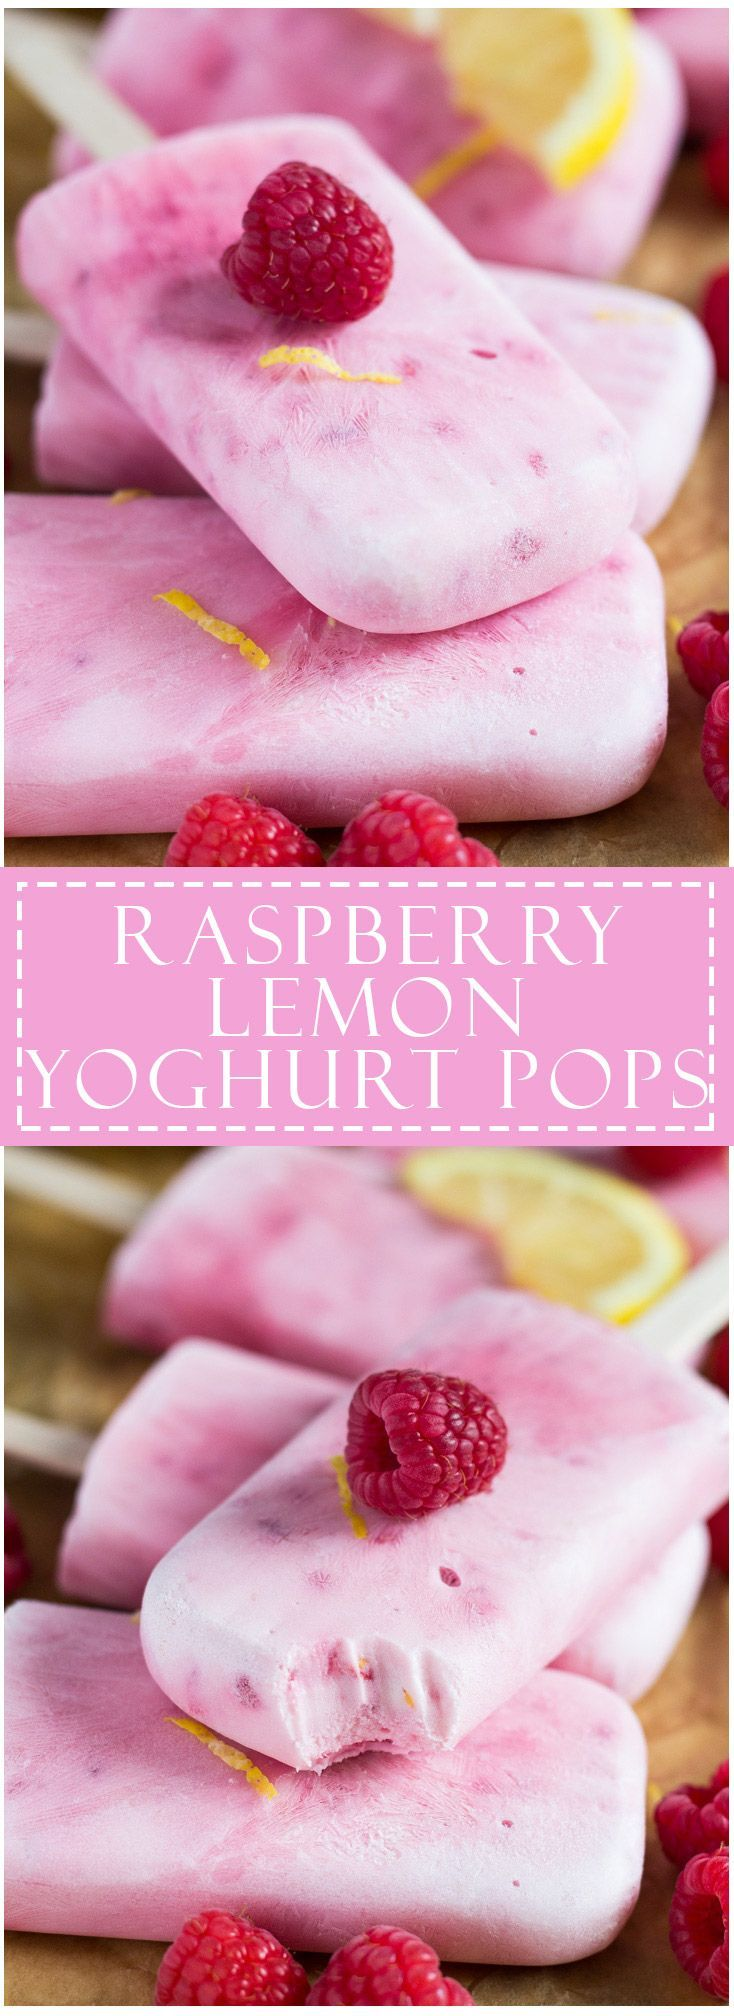 Raspberry Lemon Greek Yoghurt Popsicles